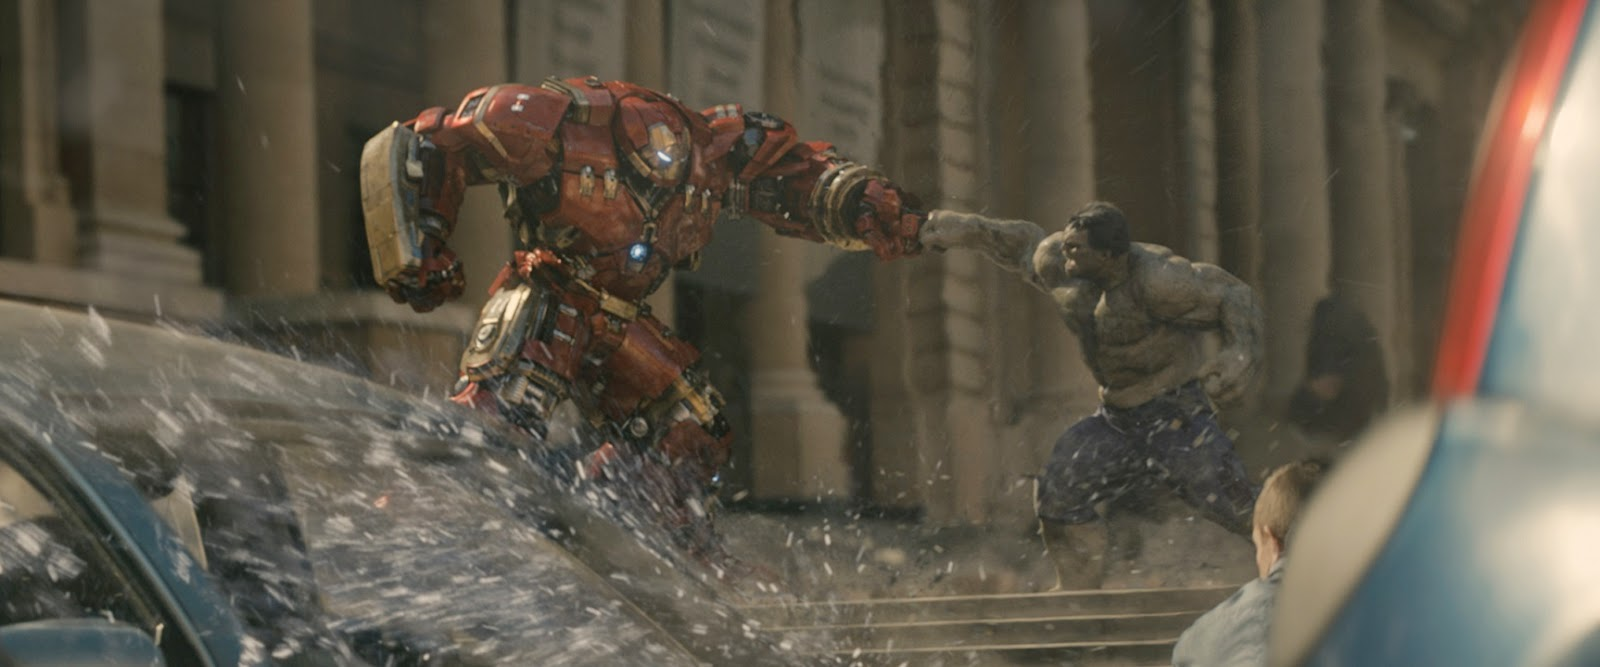 Marvel's Avengers- Age of Ultron – Global Adventure Featurette & Hulkbuster